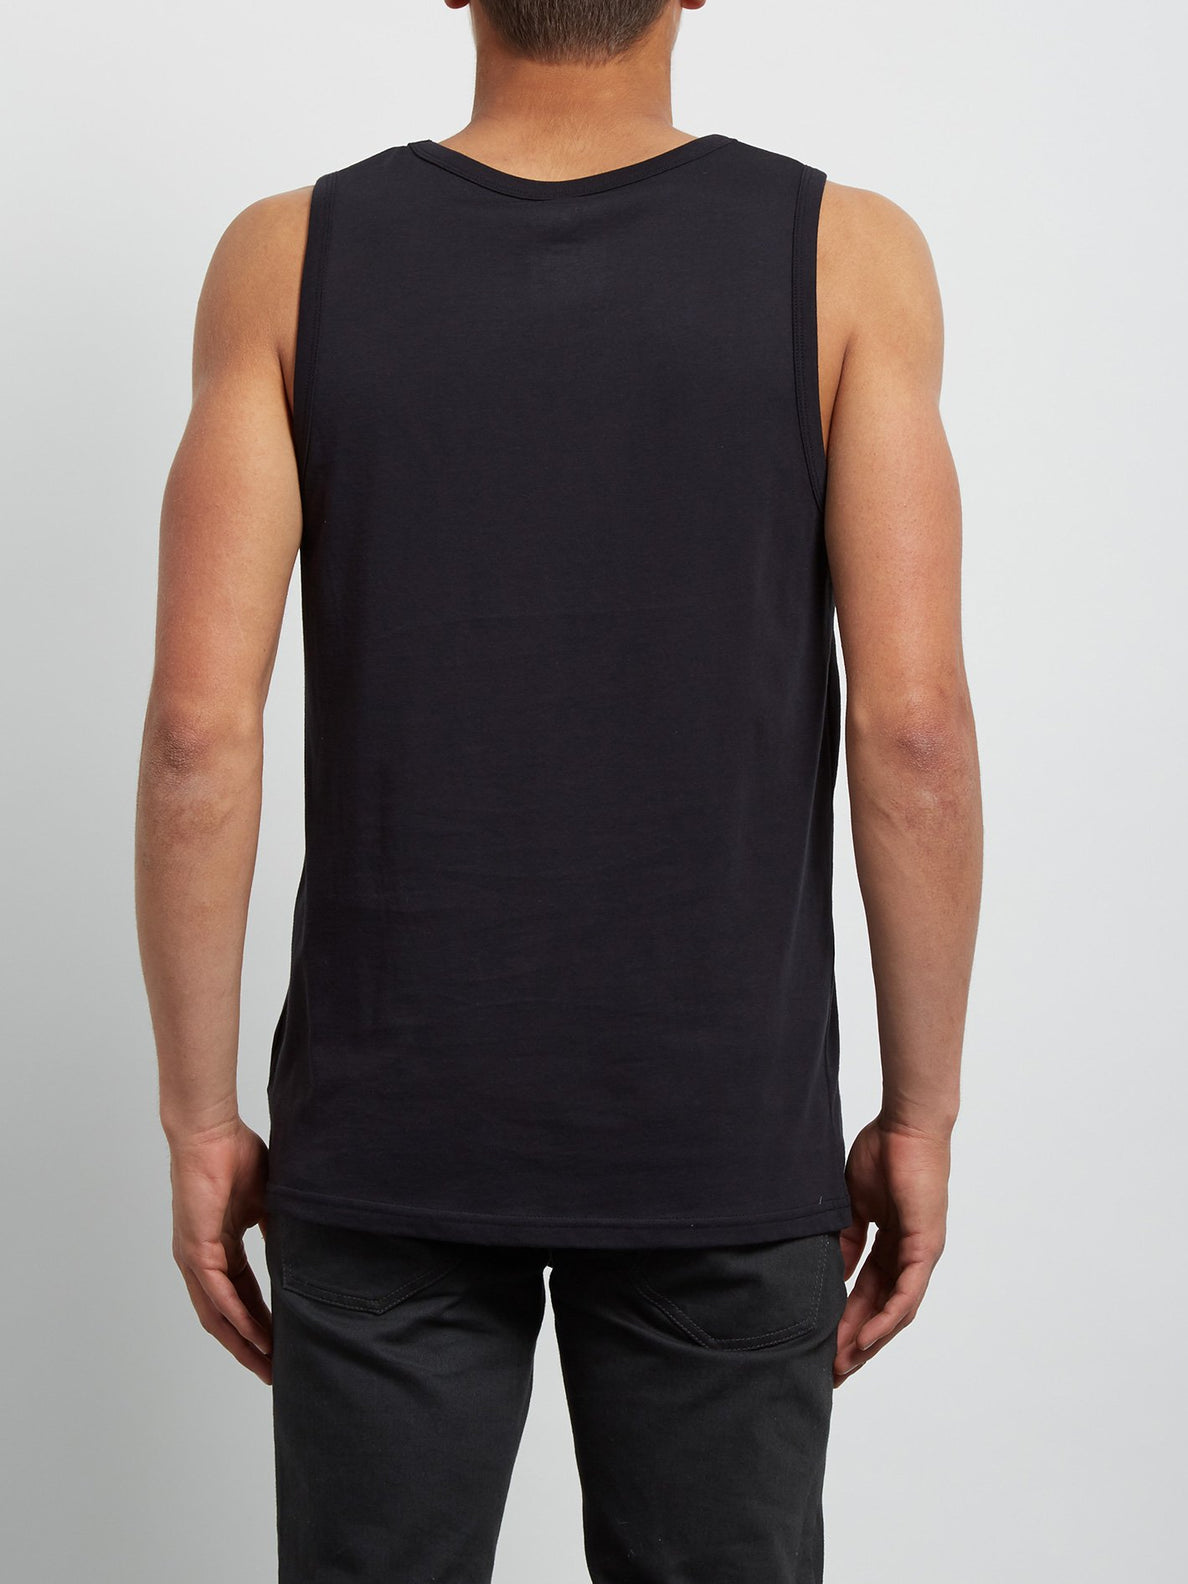 Tanktop Shatter Basic - Black